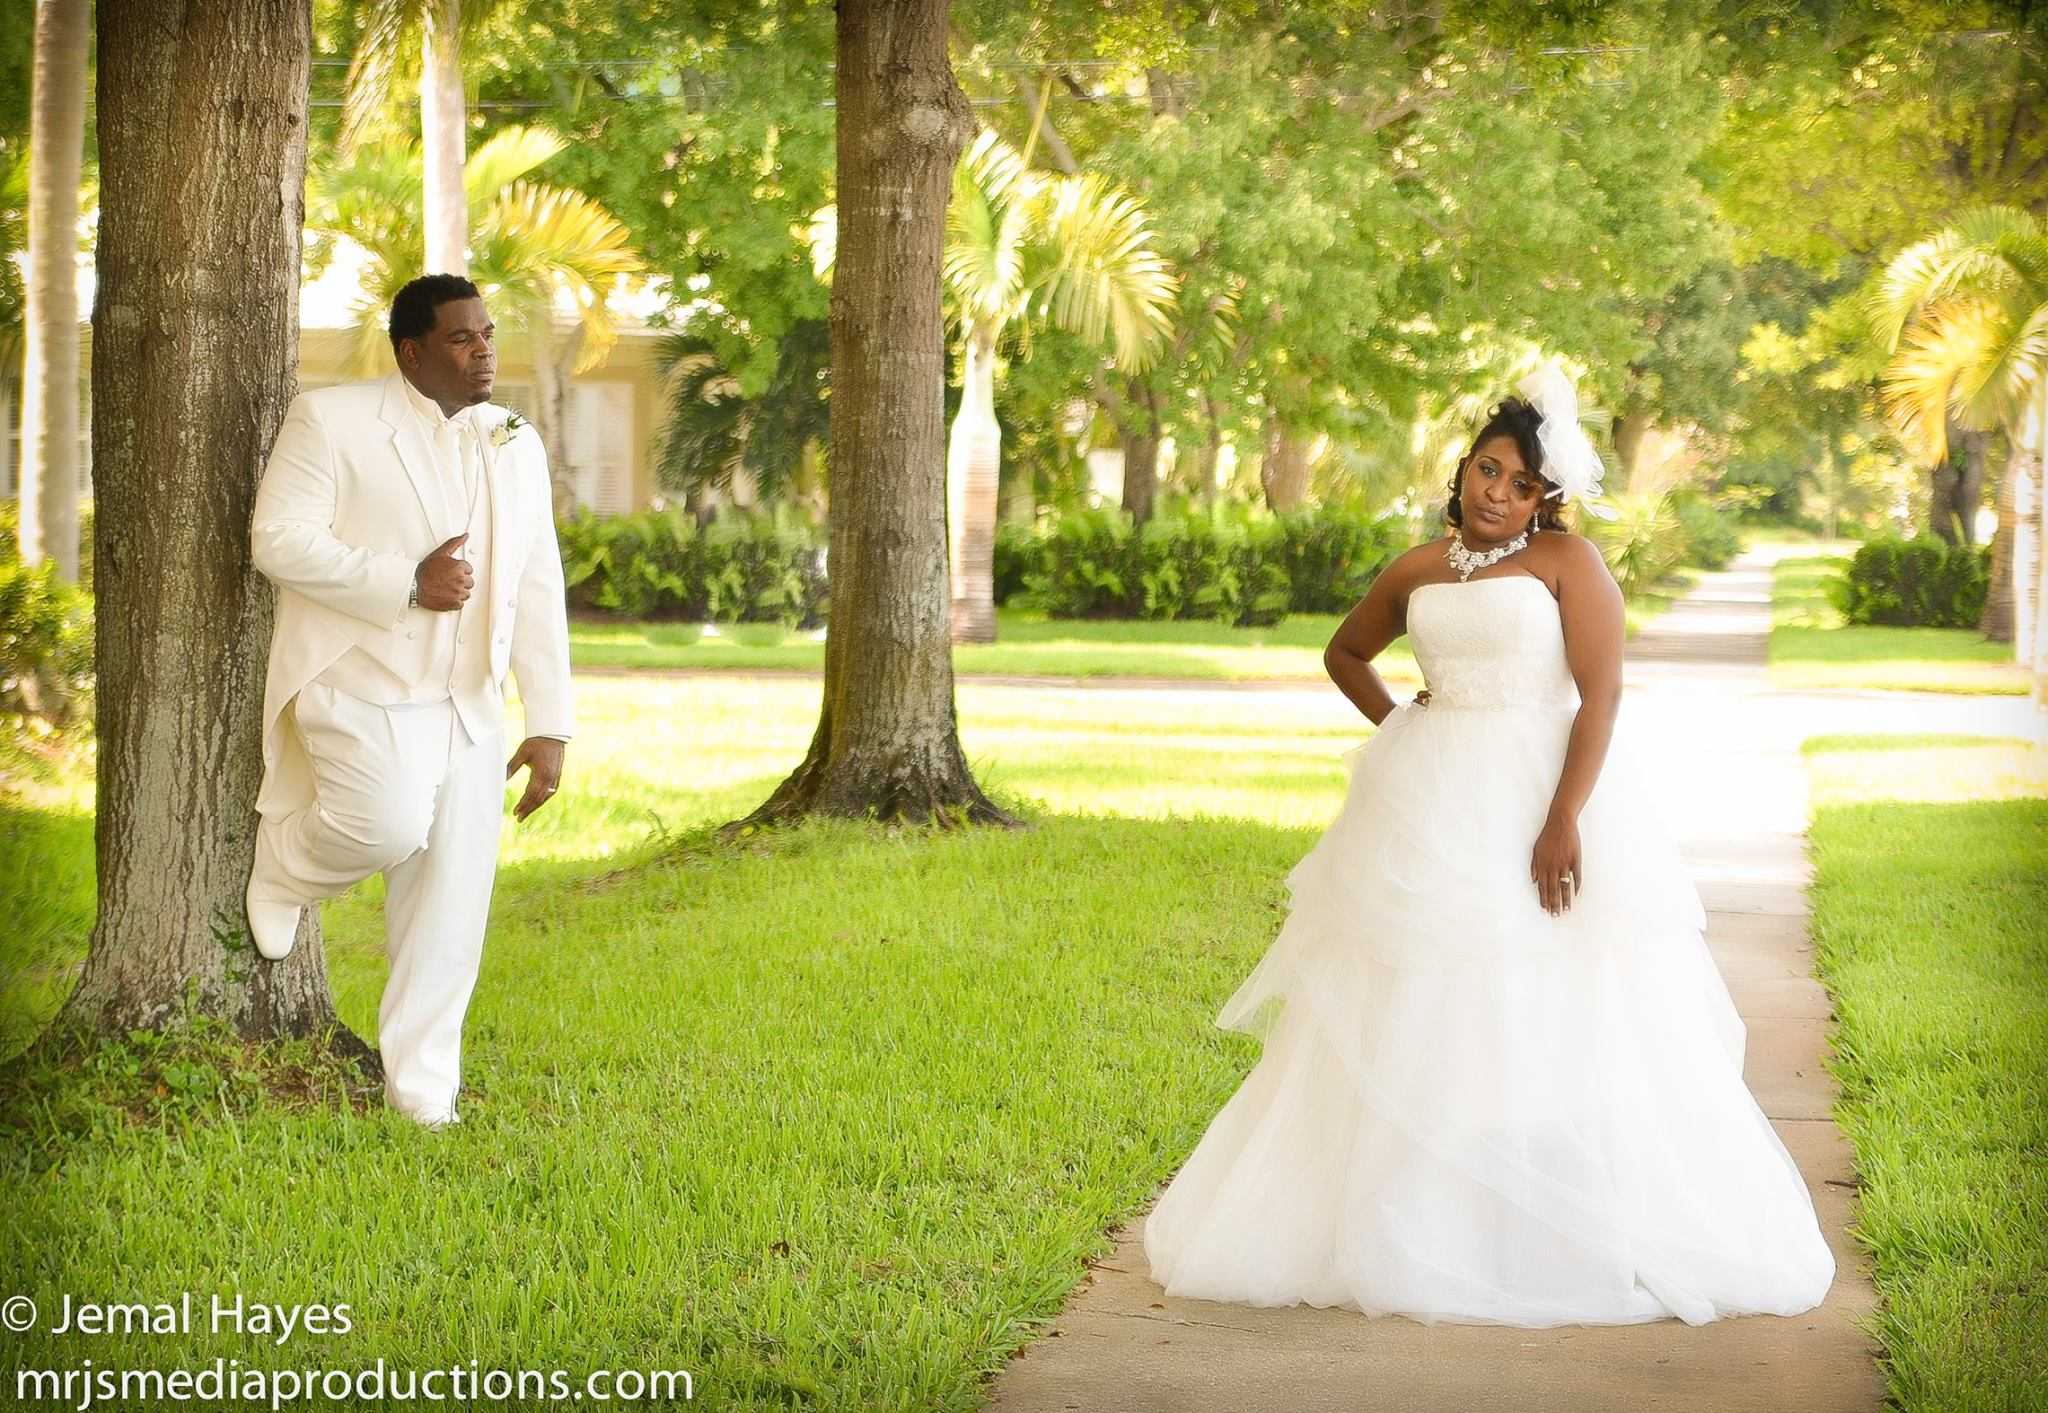 Wedding Photographer In Florida